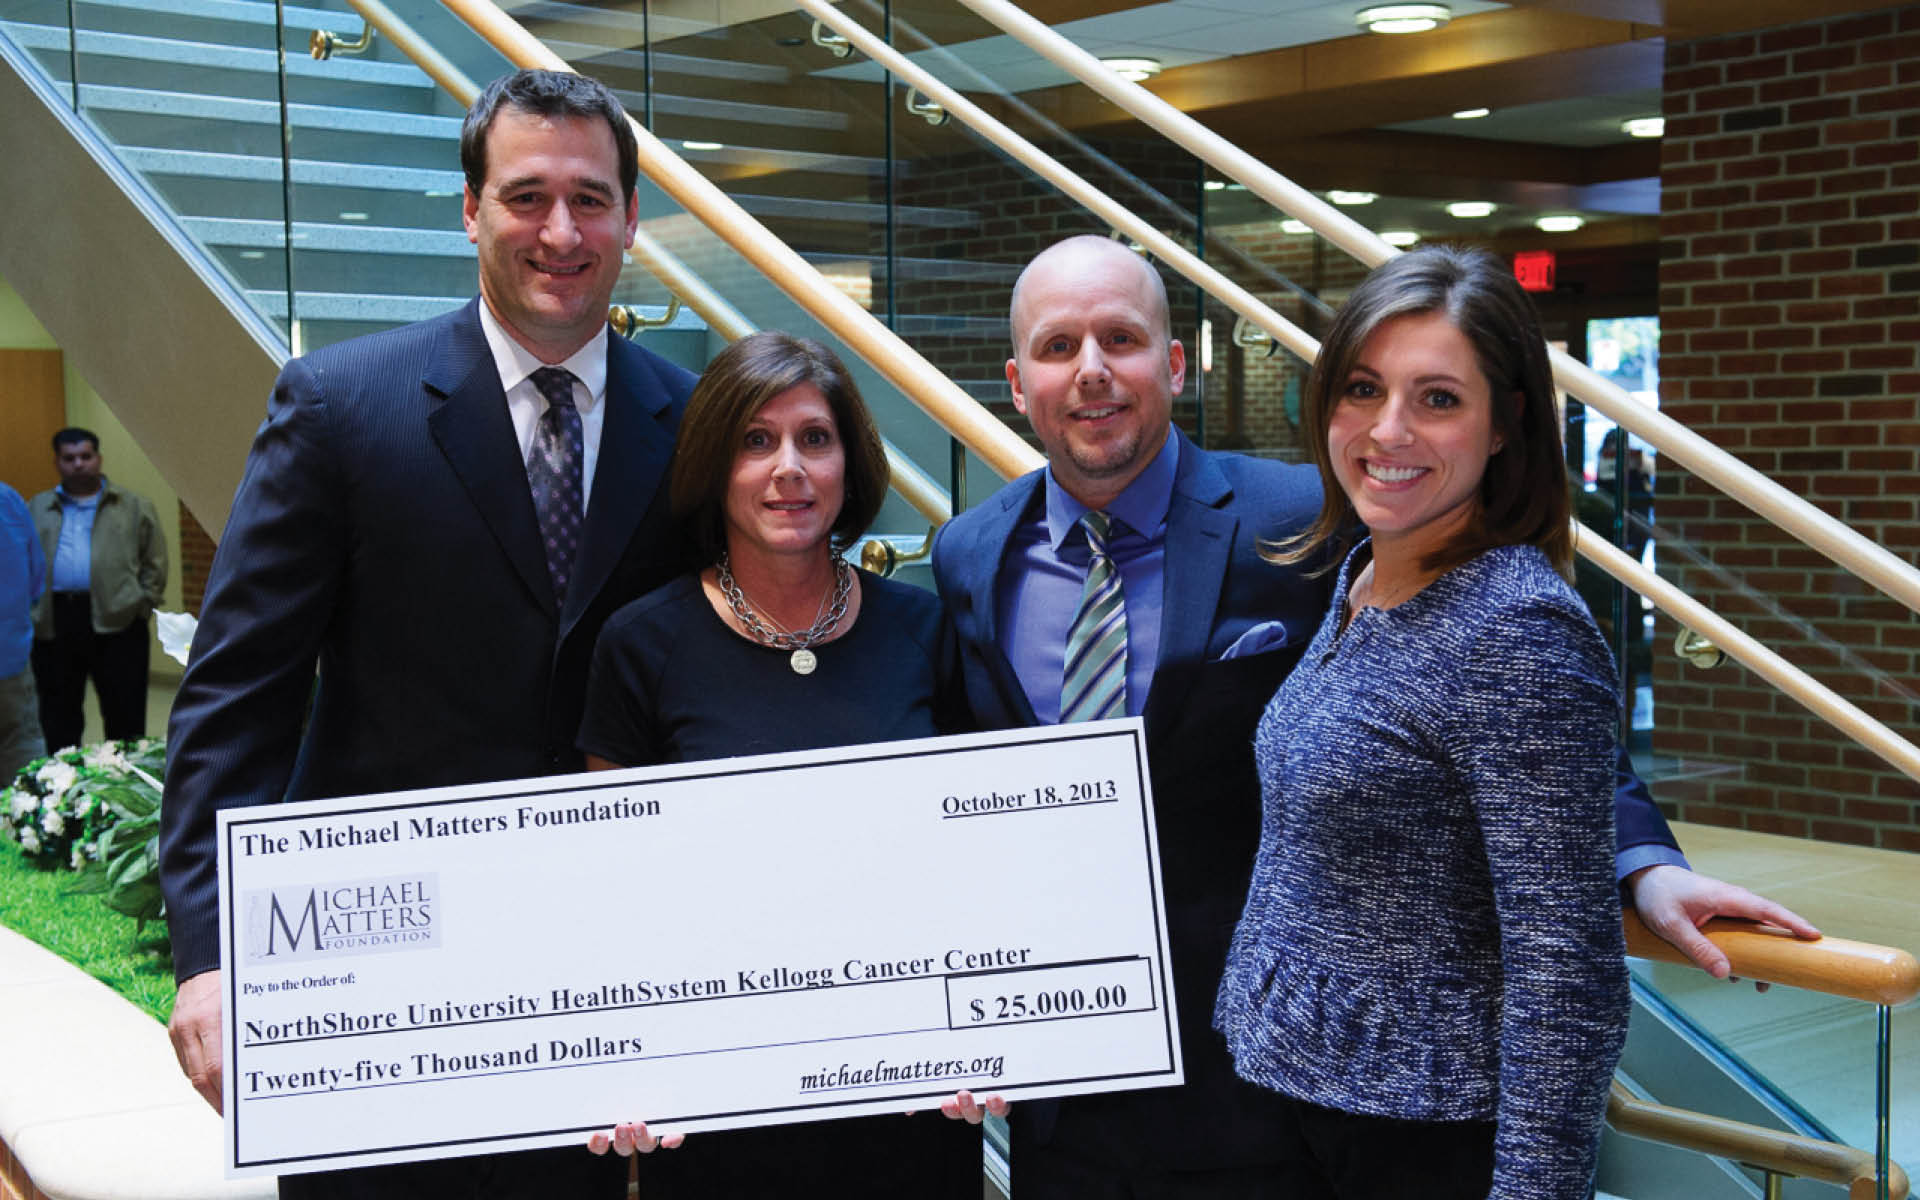 A check is made to the NorthShore University HealthSystem's cancer center from the Michael Matters Foundation, started by Roosevelt alum TJ Saye, third from left.